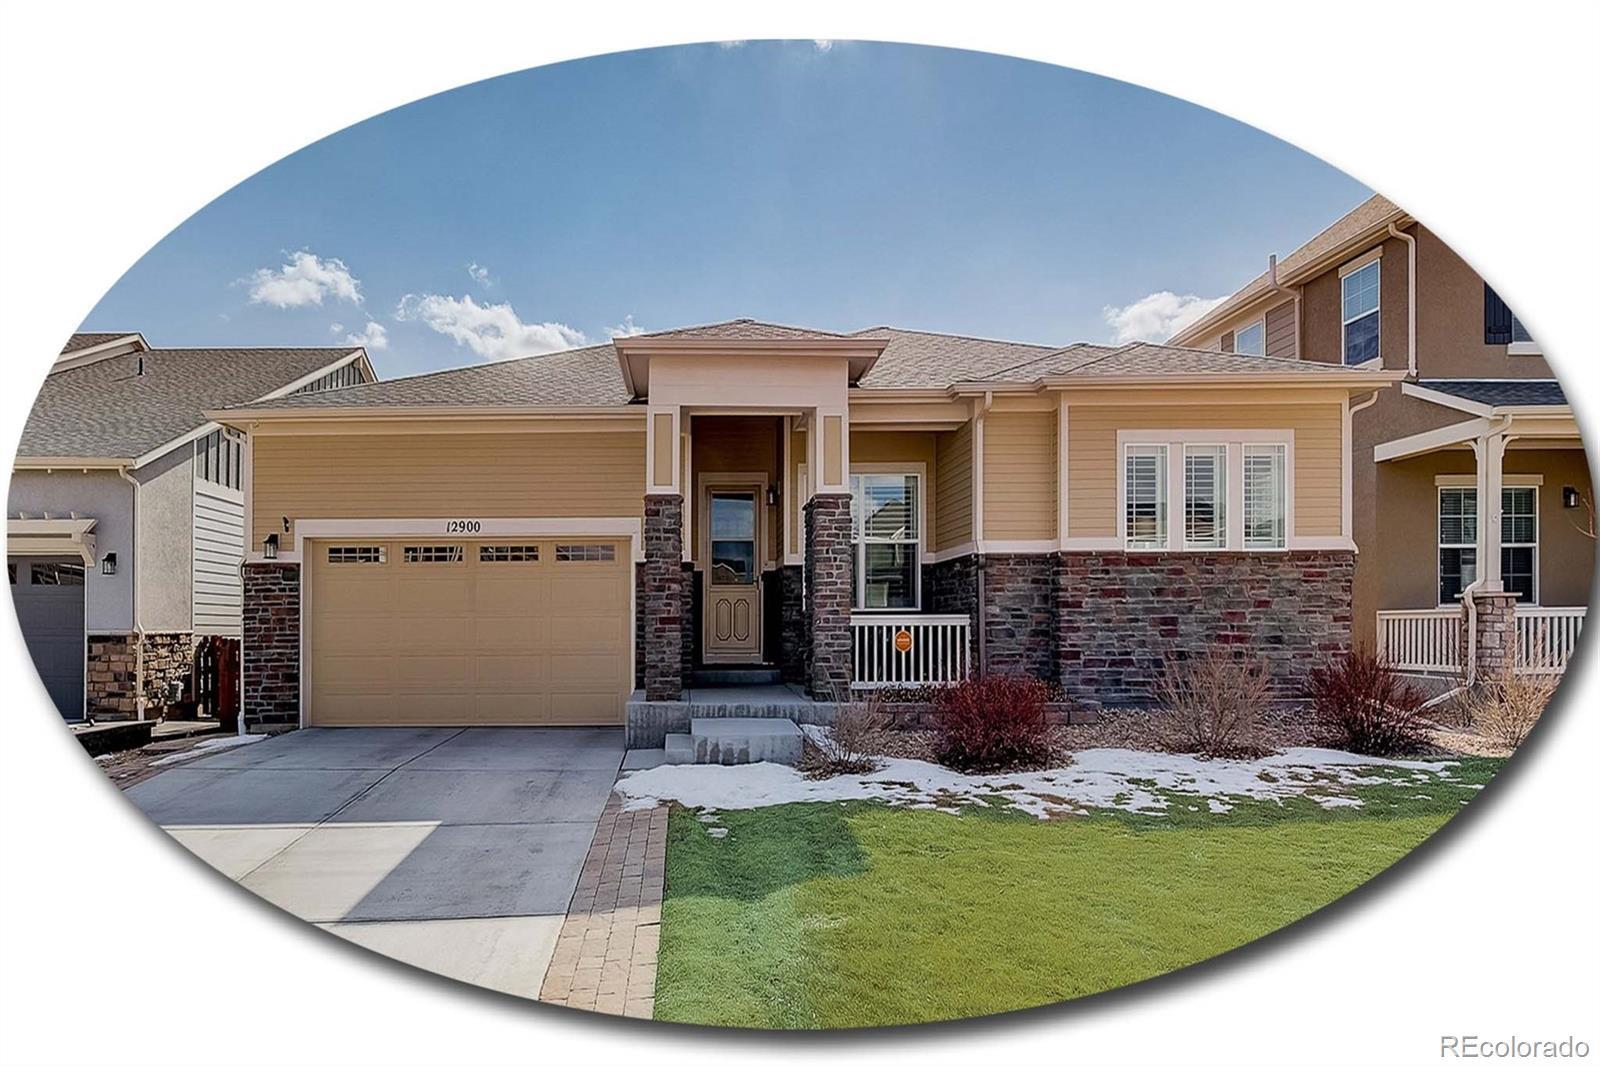 12900 W 73rd Place, Arvada, CO 80005 - #: 9409380